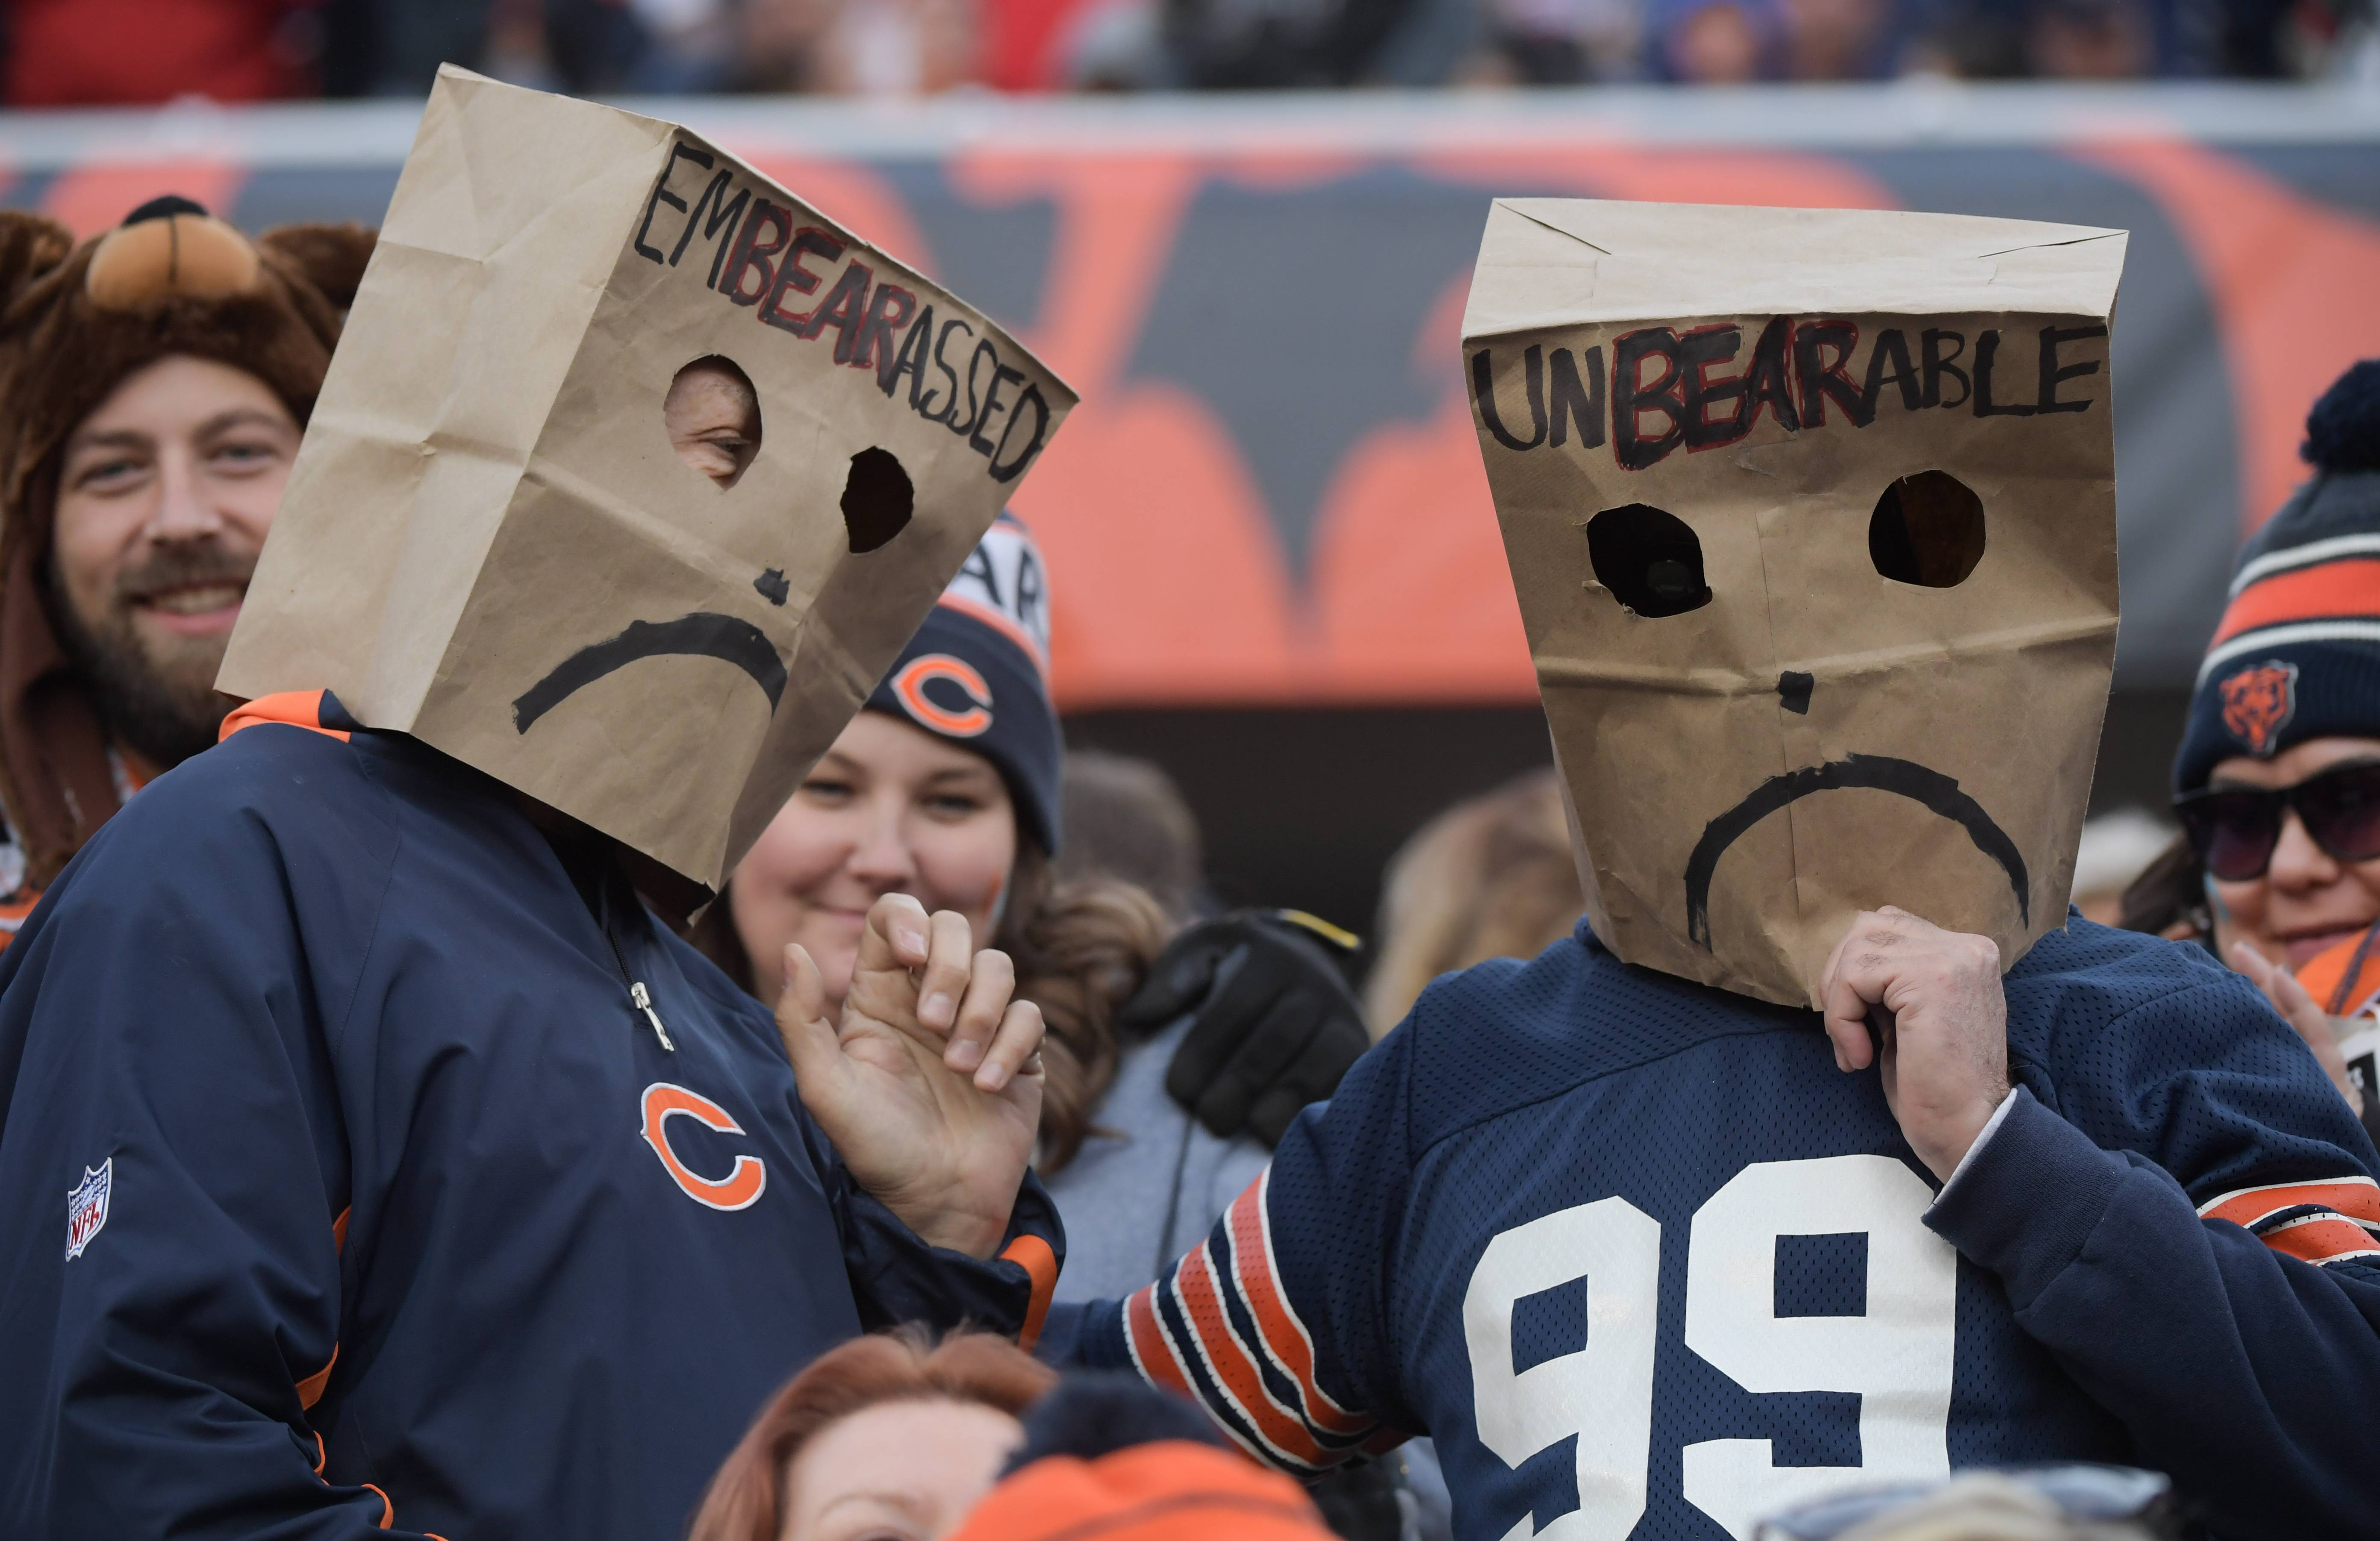 Images: Bears lose to 49ers 15-14 in the final seconds